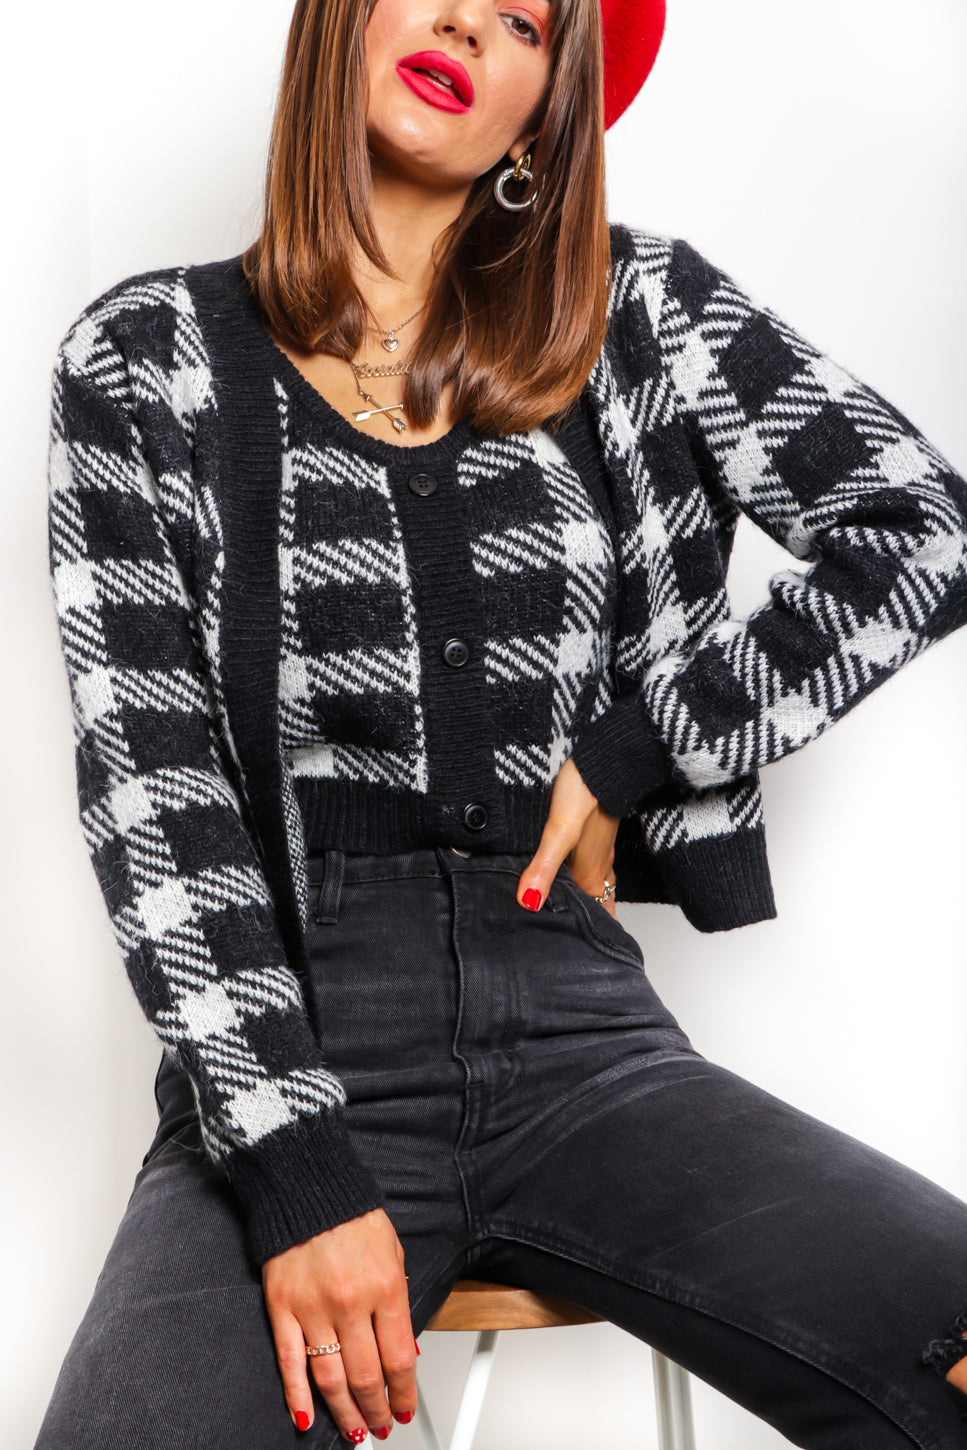 Don't You Square - Black White Knitted Co-ord